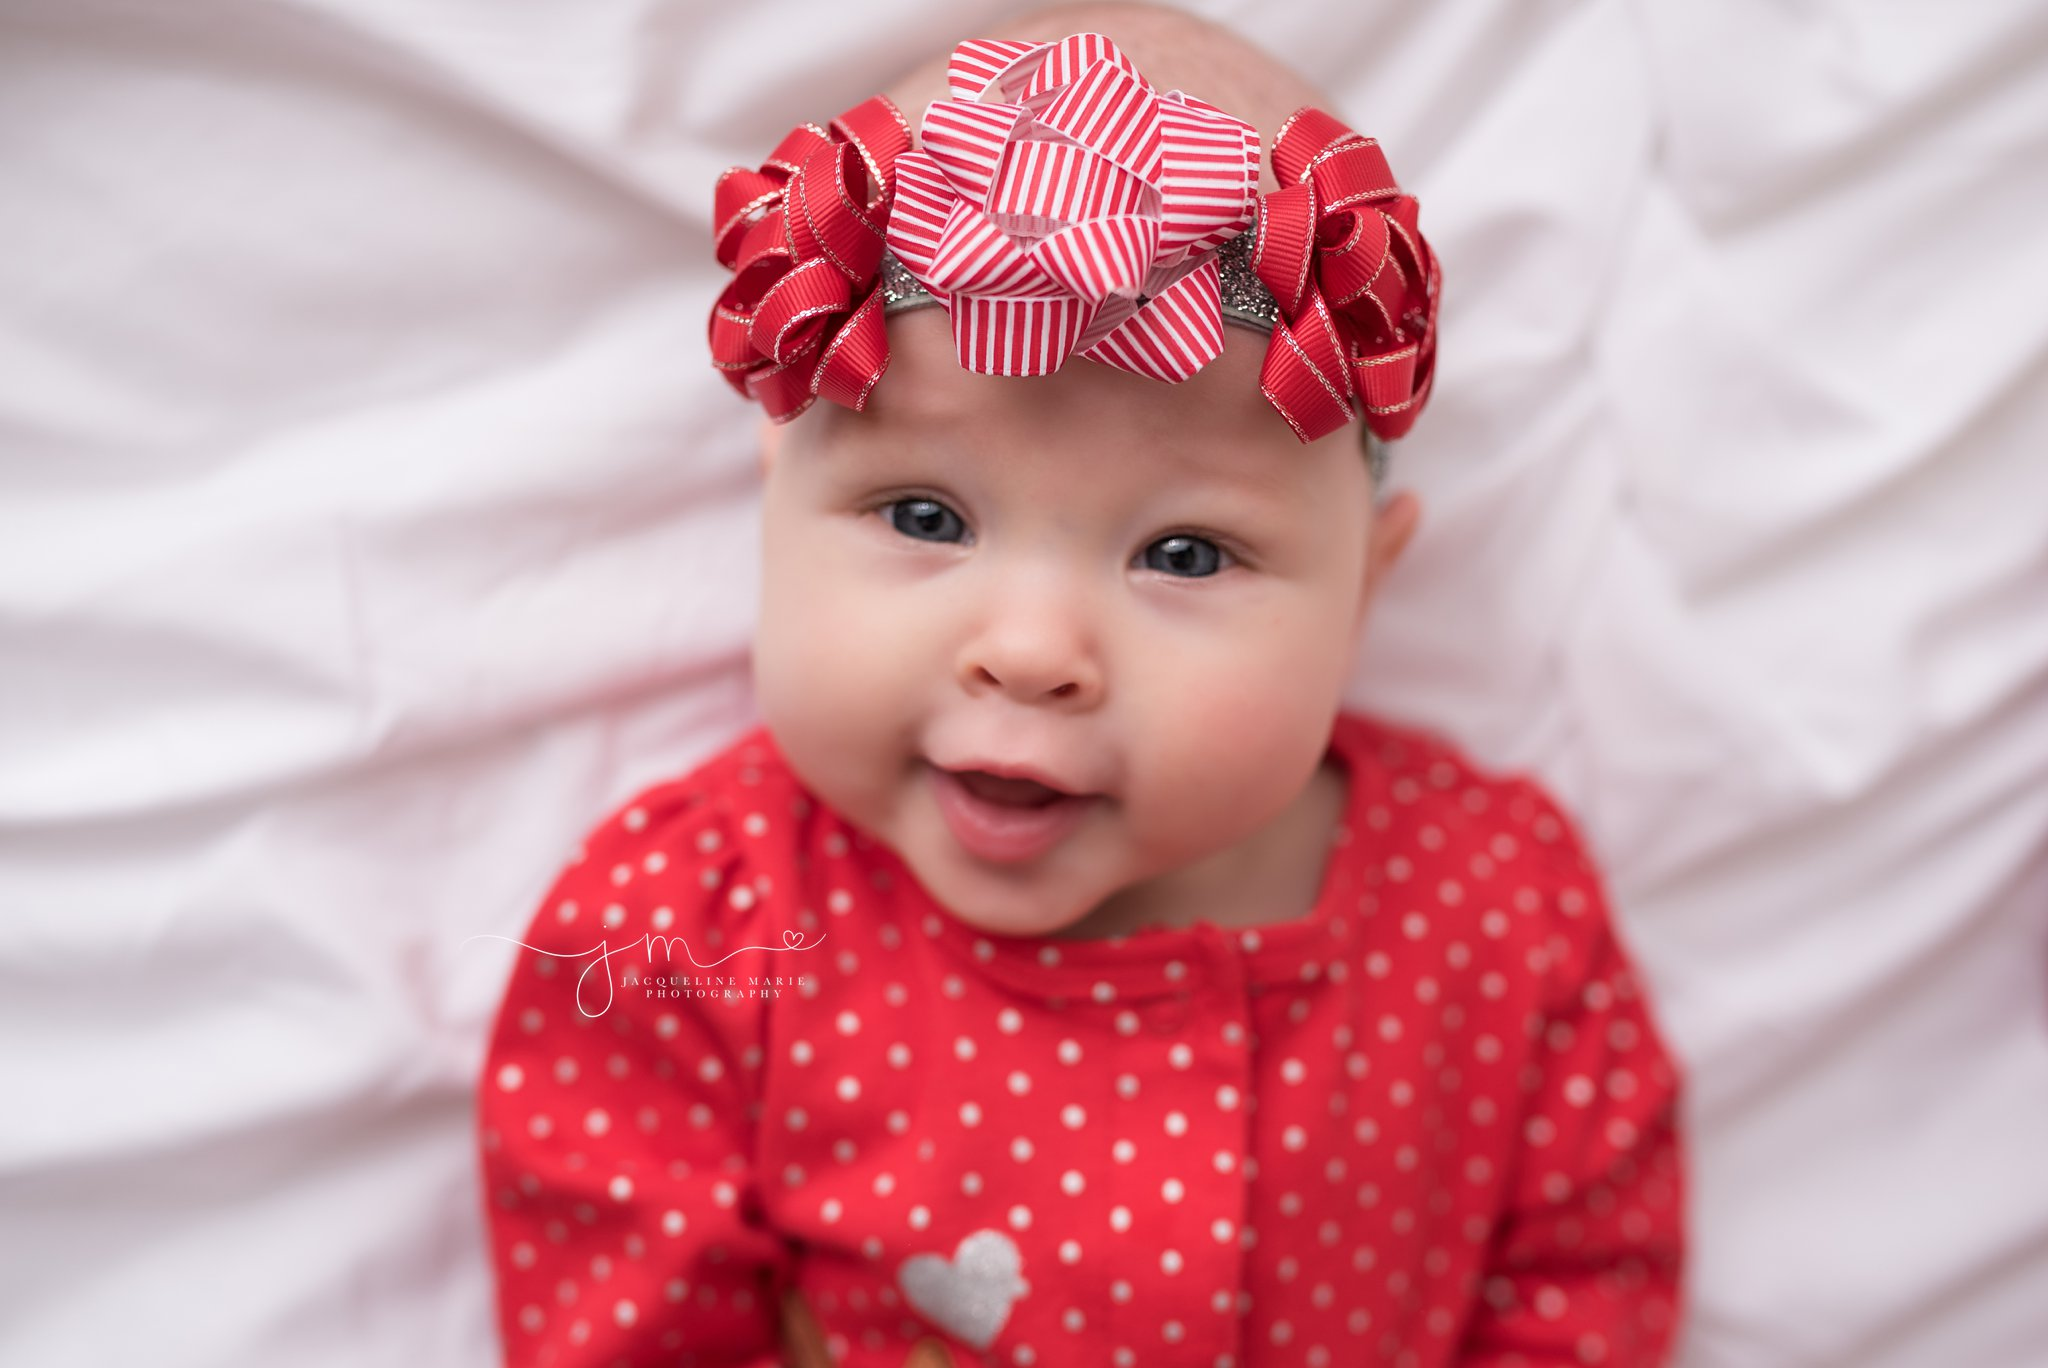 Columbus Ohio baby photographer features portrait of baby girl in Christmas headband with bows